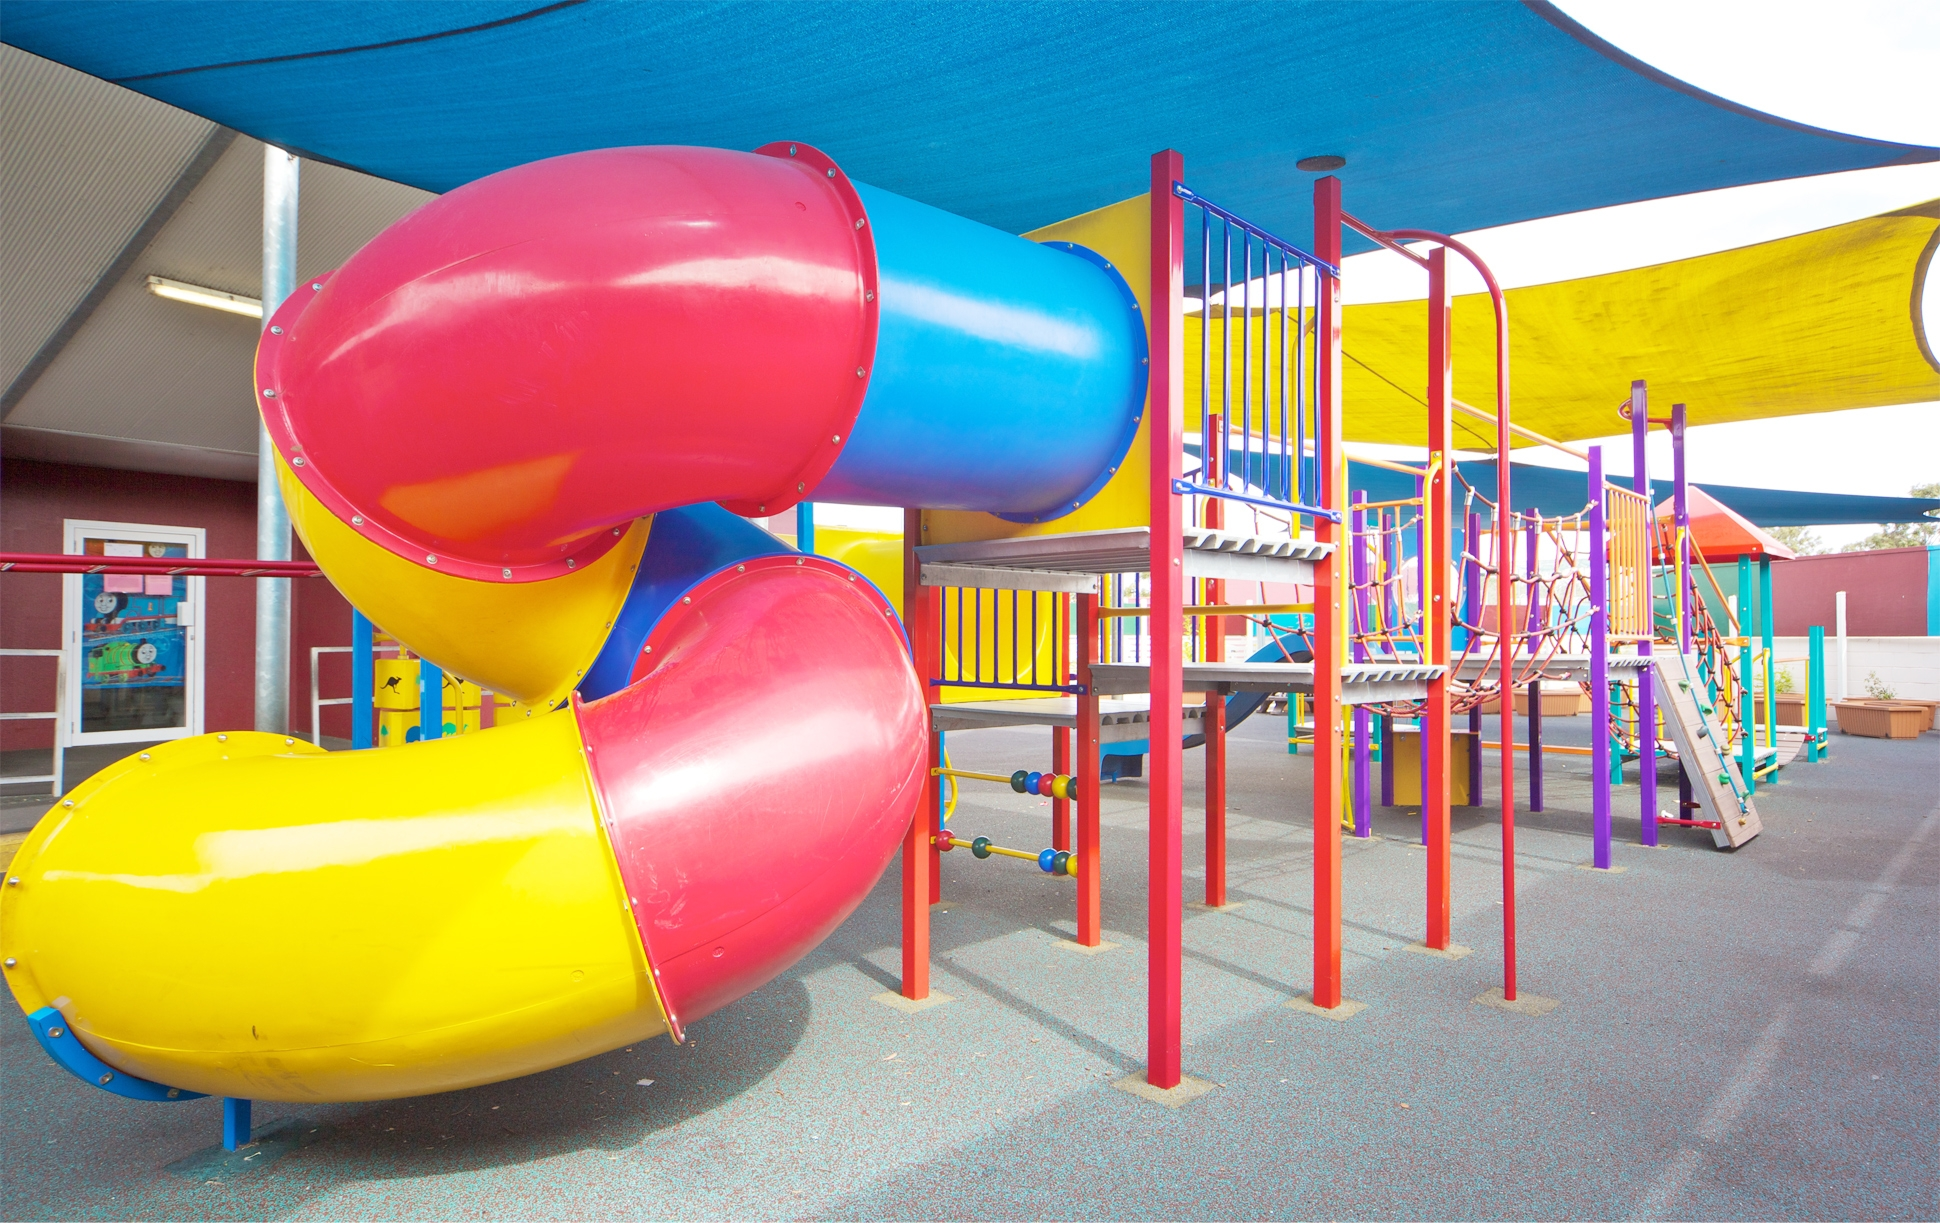 Spiral Slide - Motion in the playground